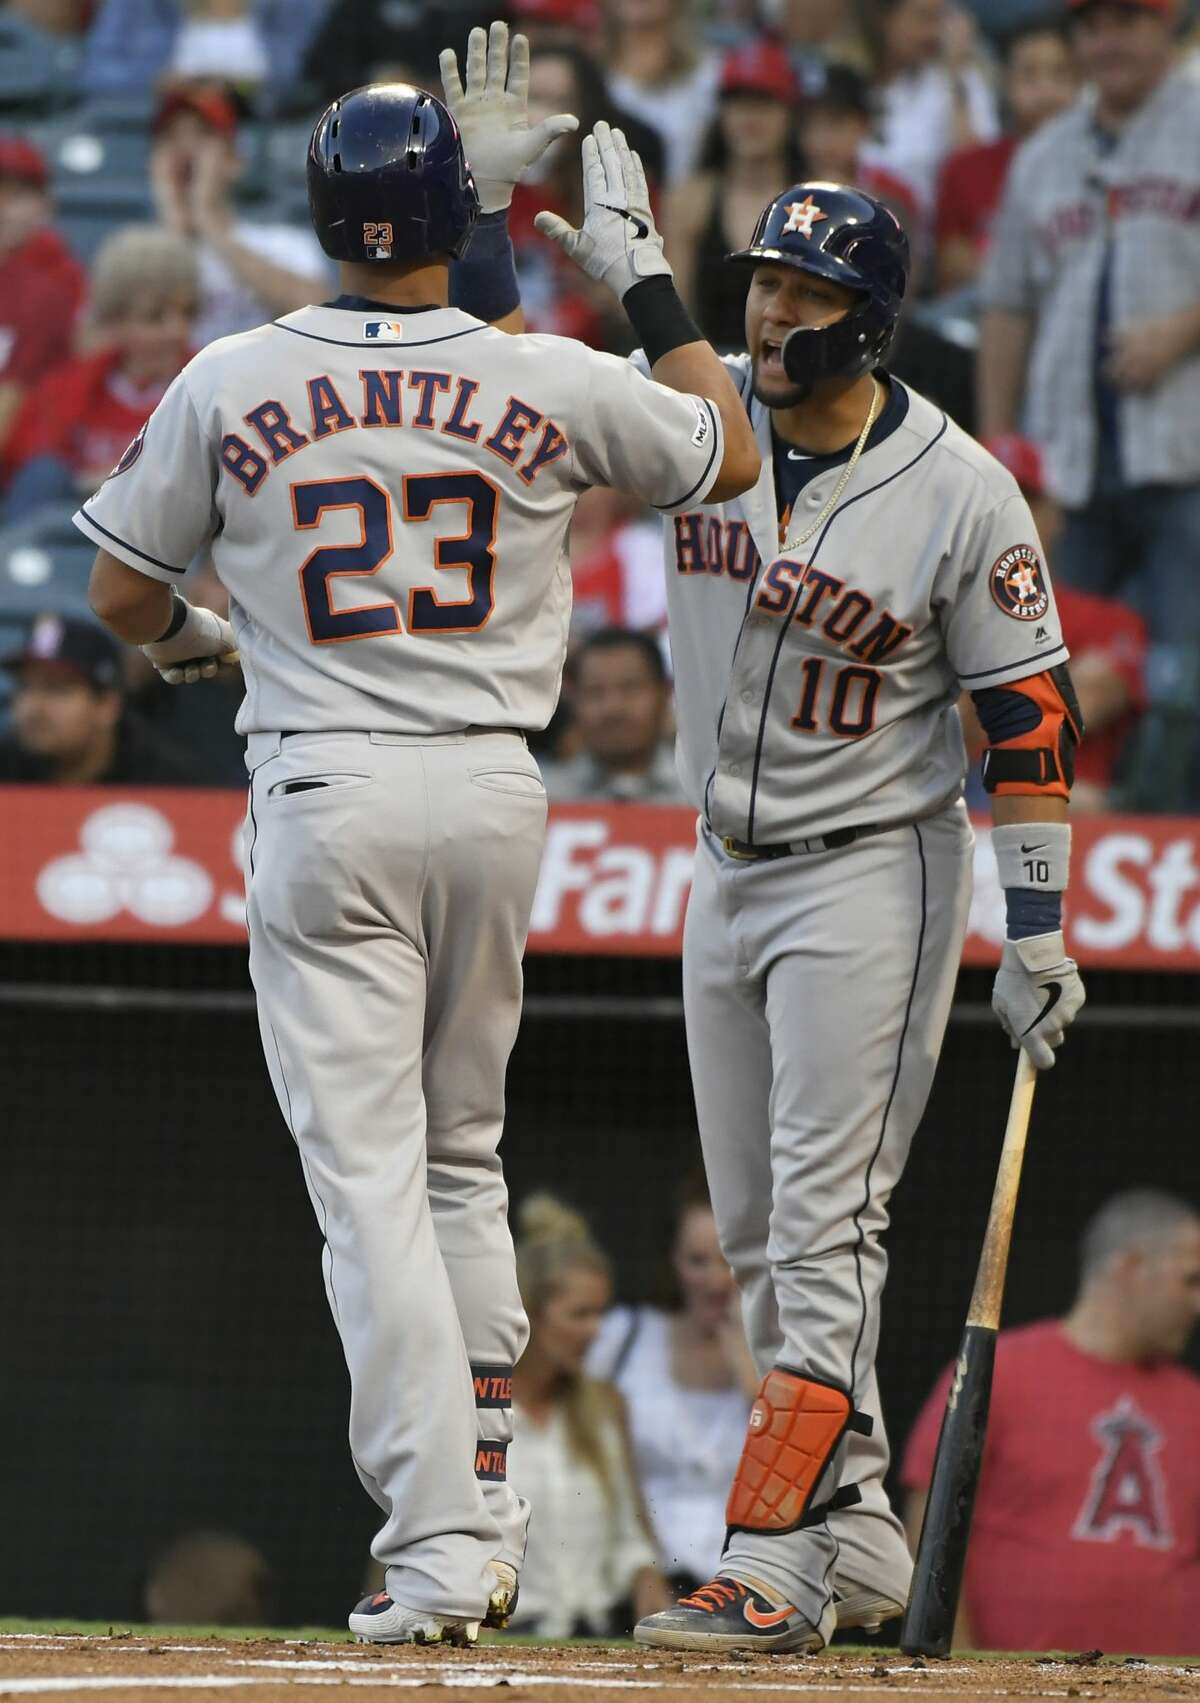 Michael Brantley #23 of the Houston Astros is congratulated by Yuli Gurriel #10 for his two run home run in the first inning against the Los Angeles Angels of Anaheim at Angel Stadium of Anaheim on July 17, 2019 in Anaheim, California. (John McCoy/Getty Images/TNS)